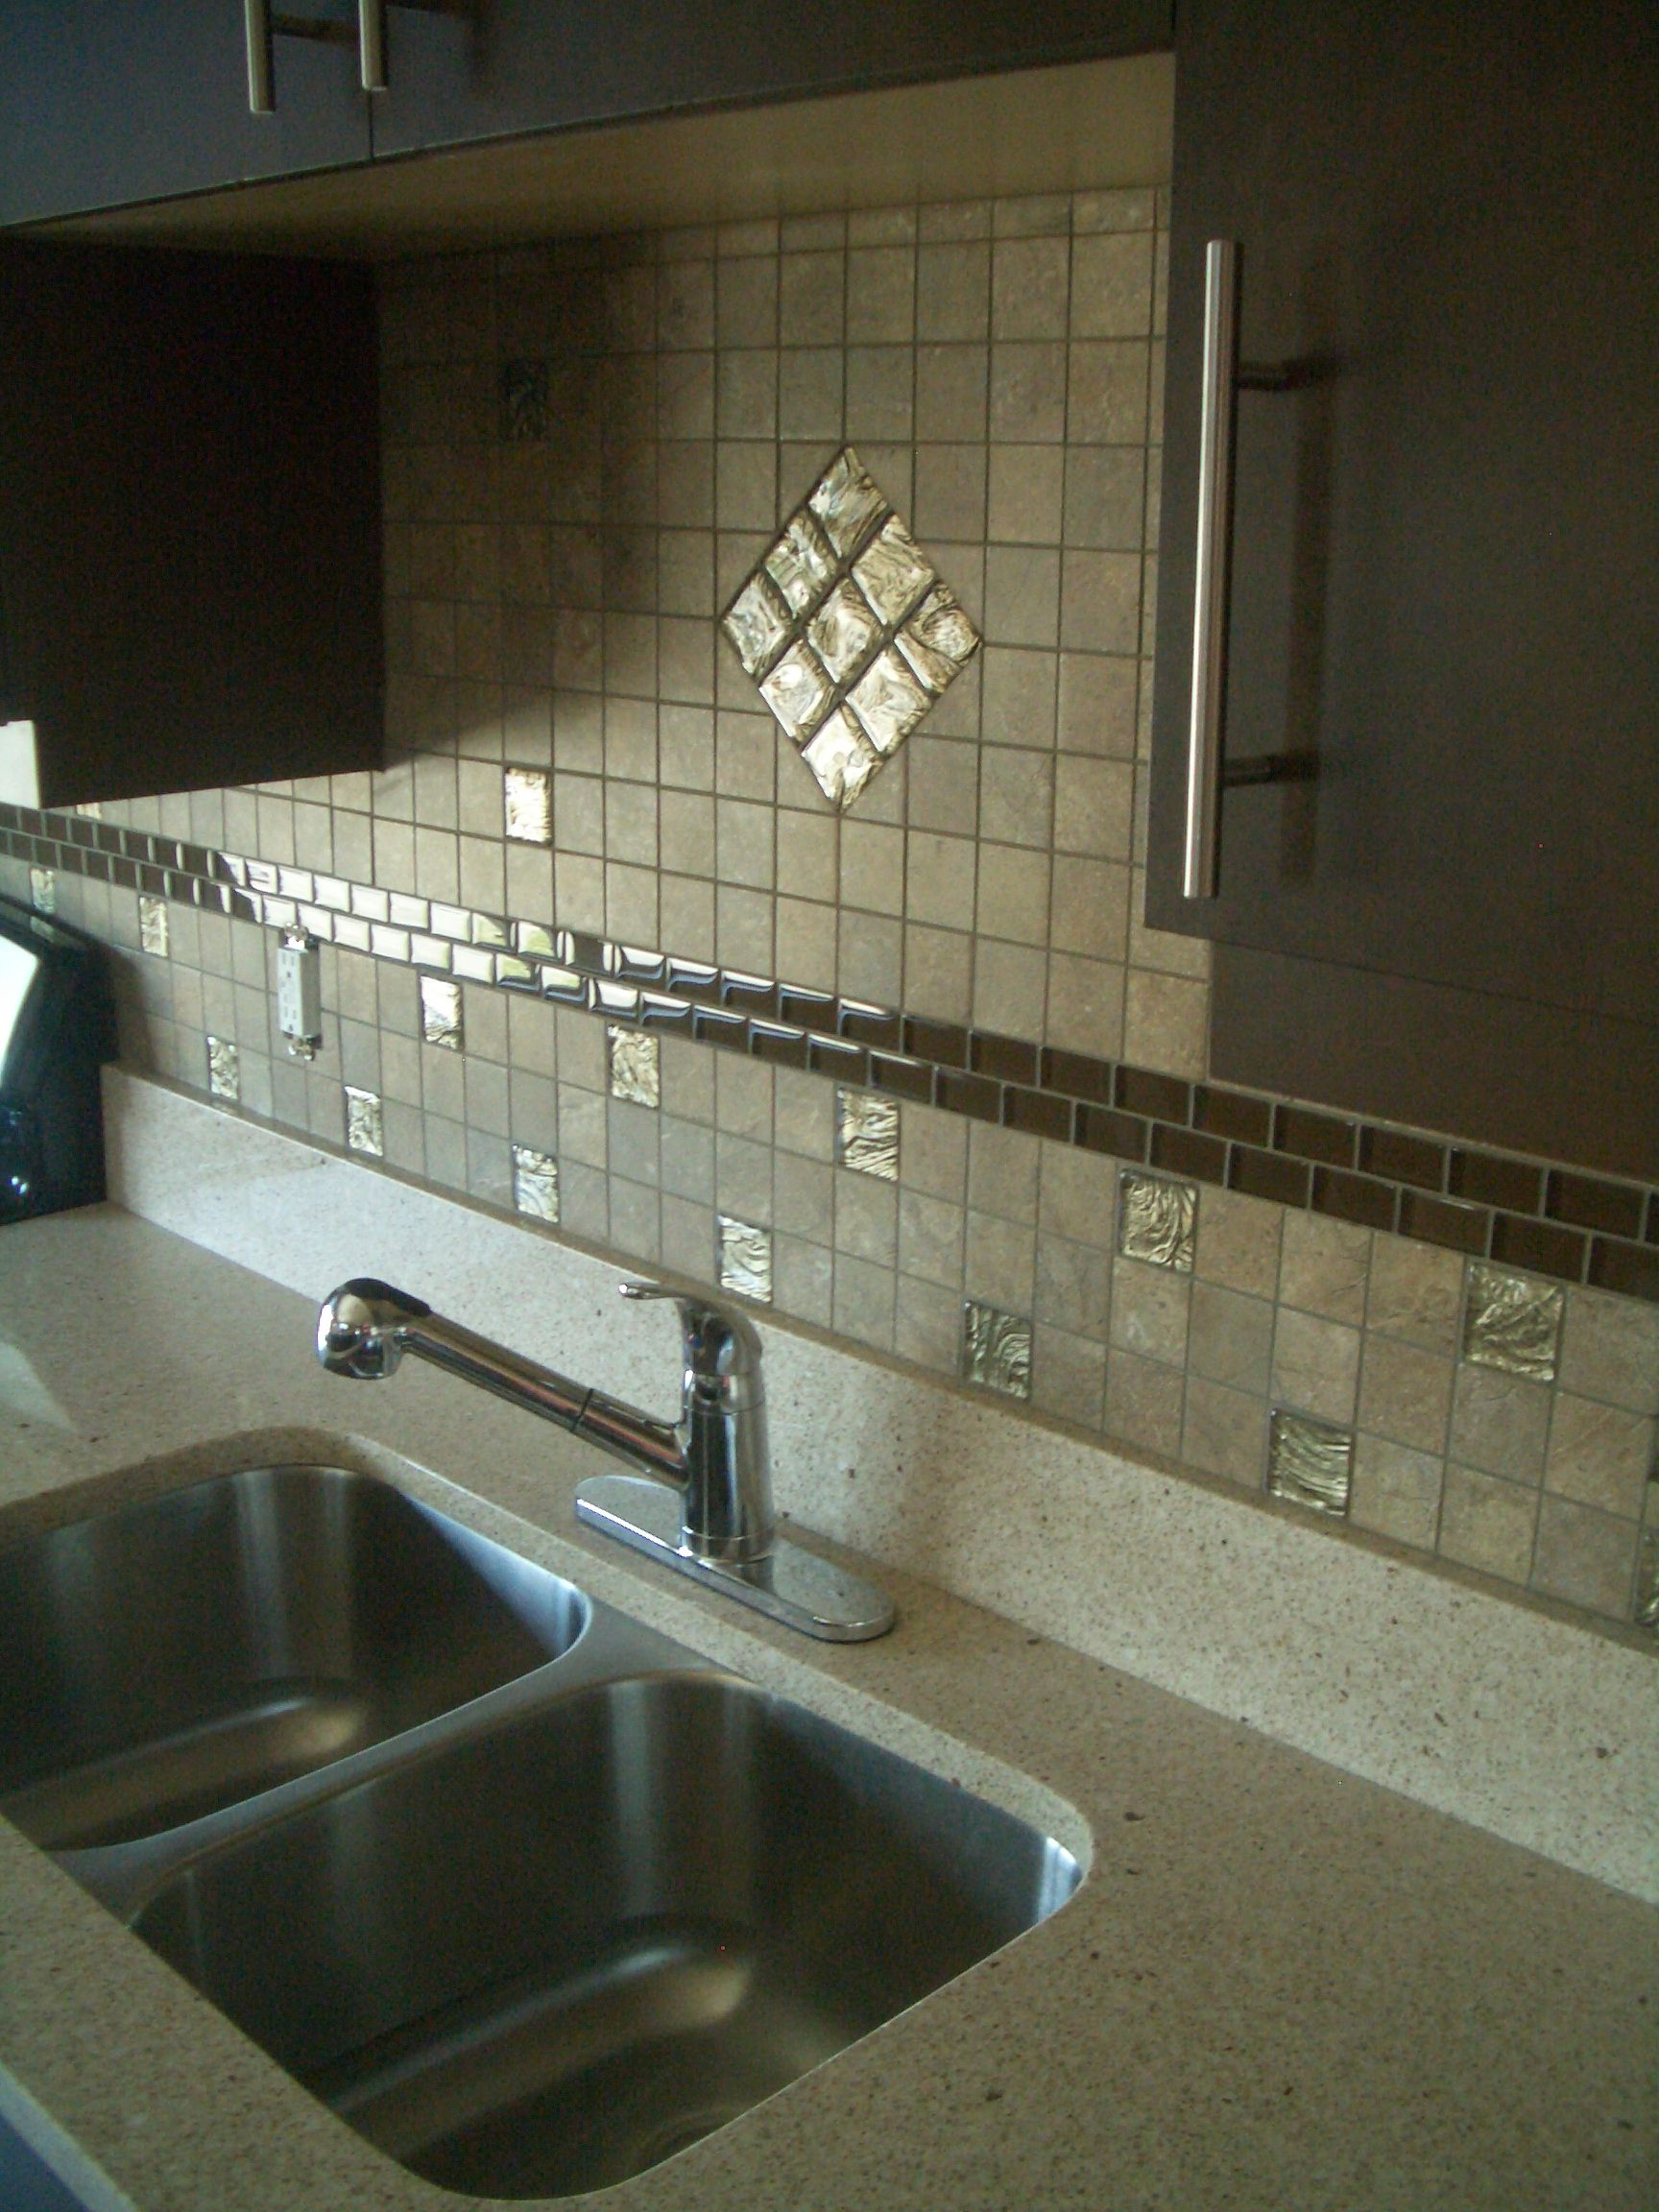 Porcelain Tile Kitchen Backsplash 4 Granite Backsplash With Tile Above Recently Finished